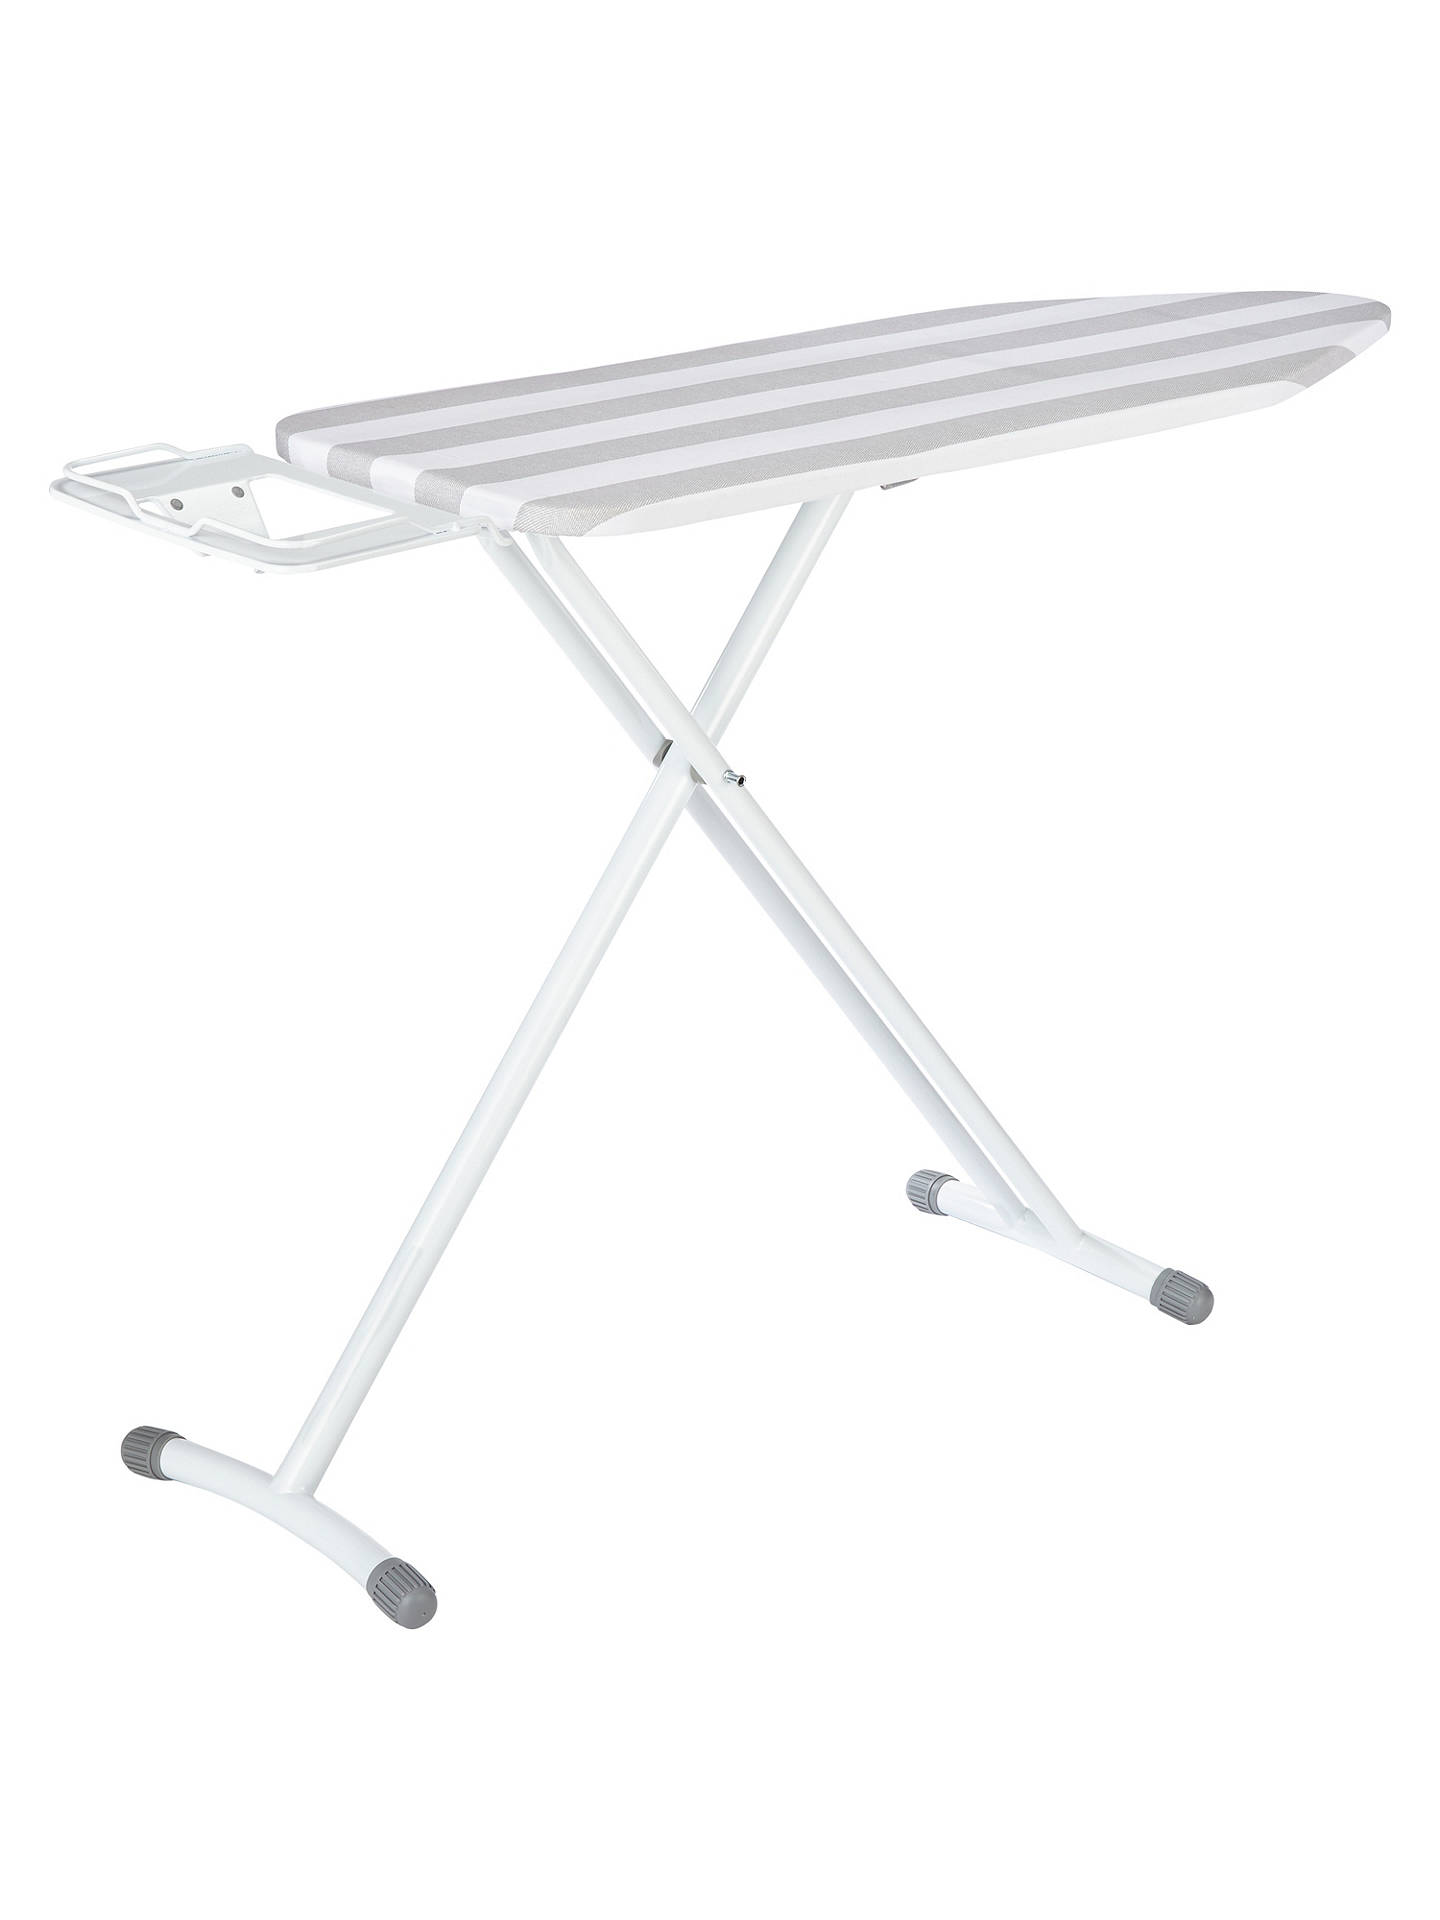 15d8af974ed4 Buy John Lewis & Partners Classic Ironing Board, L122 x W38cm Online at  johnlewis.